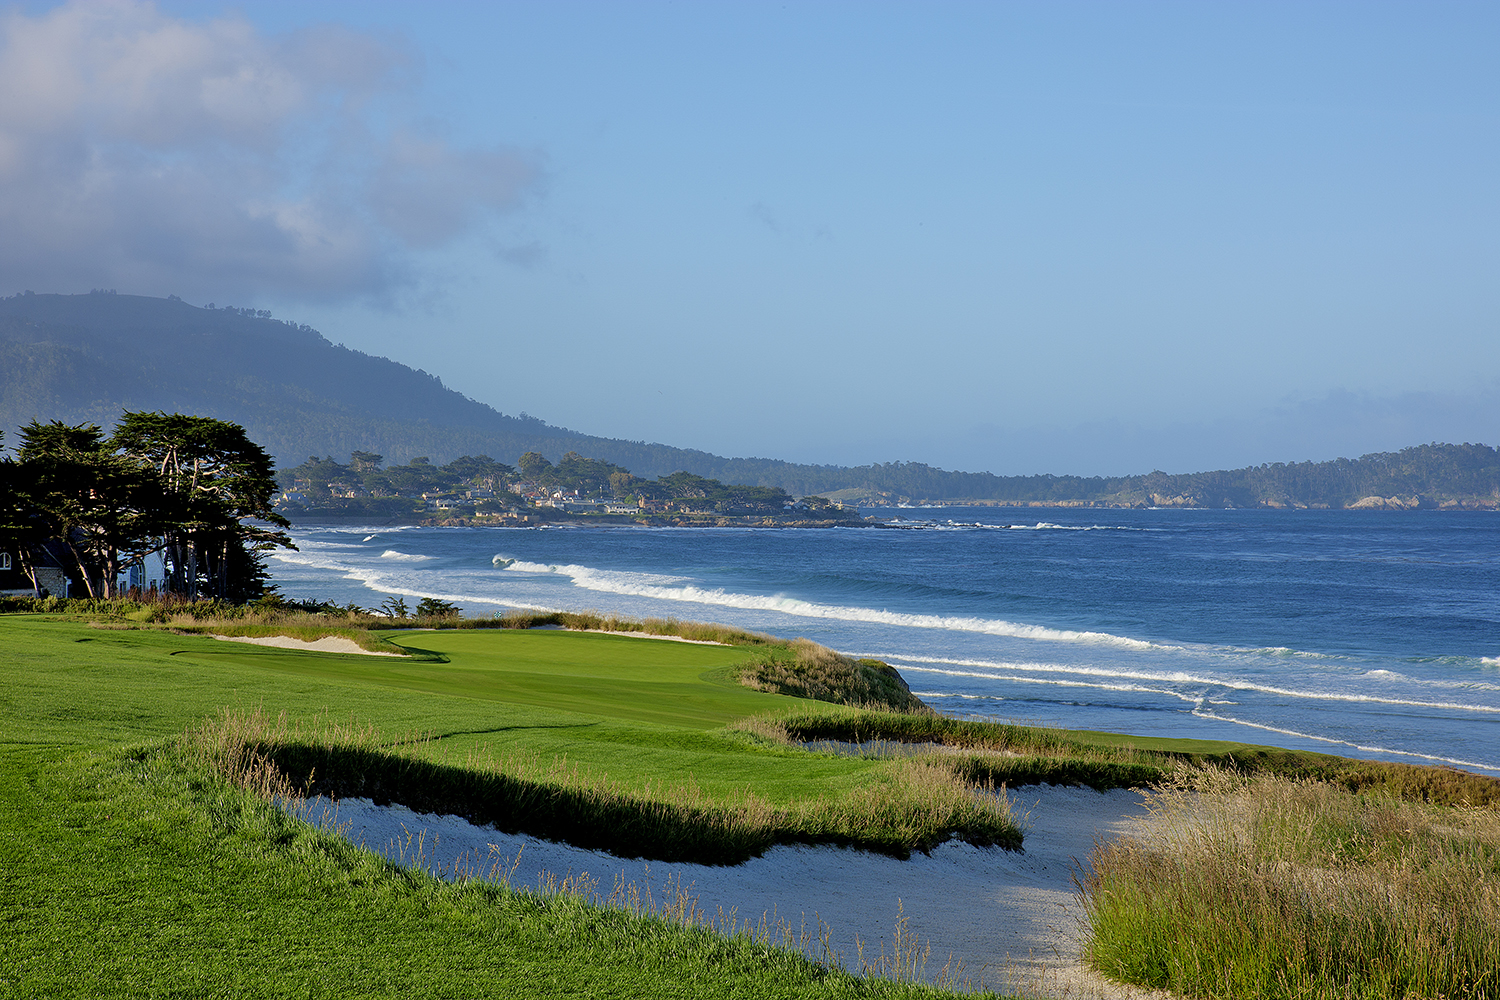 10th hole at Pebble Beach